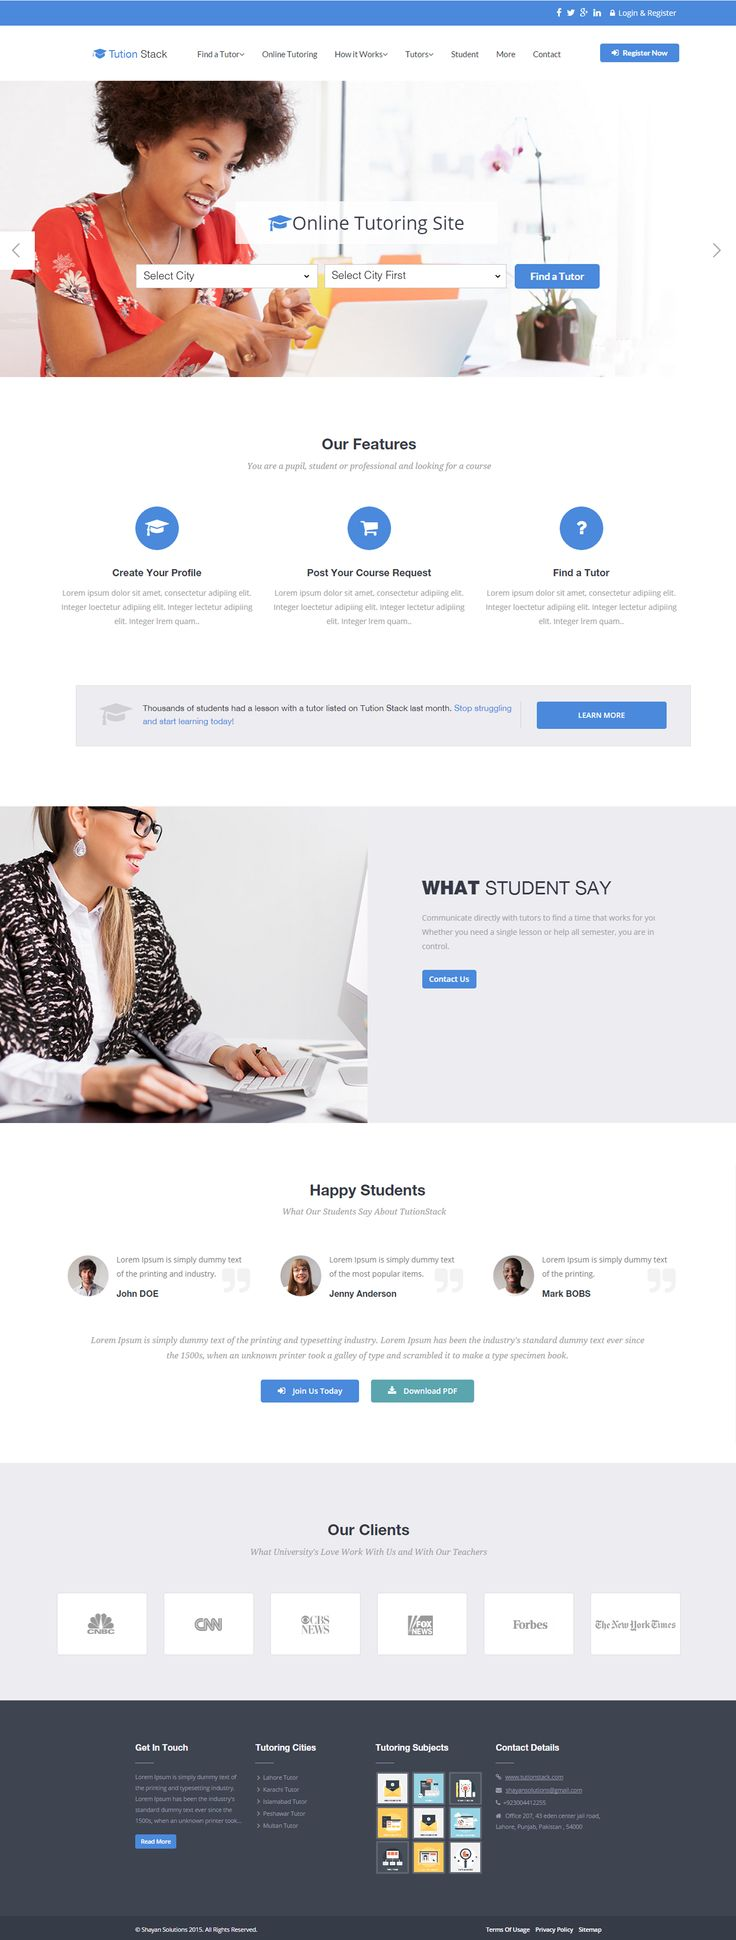 25 best Corporate Web Templates images on Pinterest | Templates ...